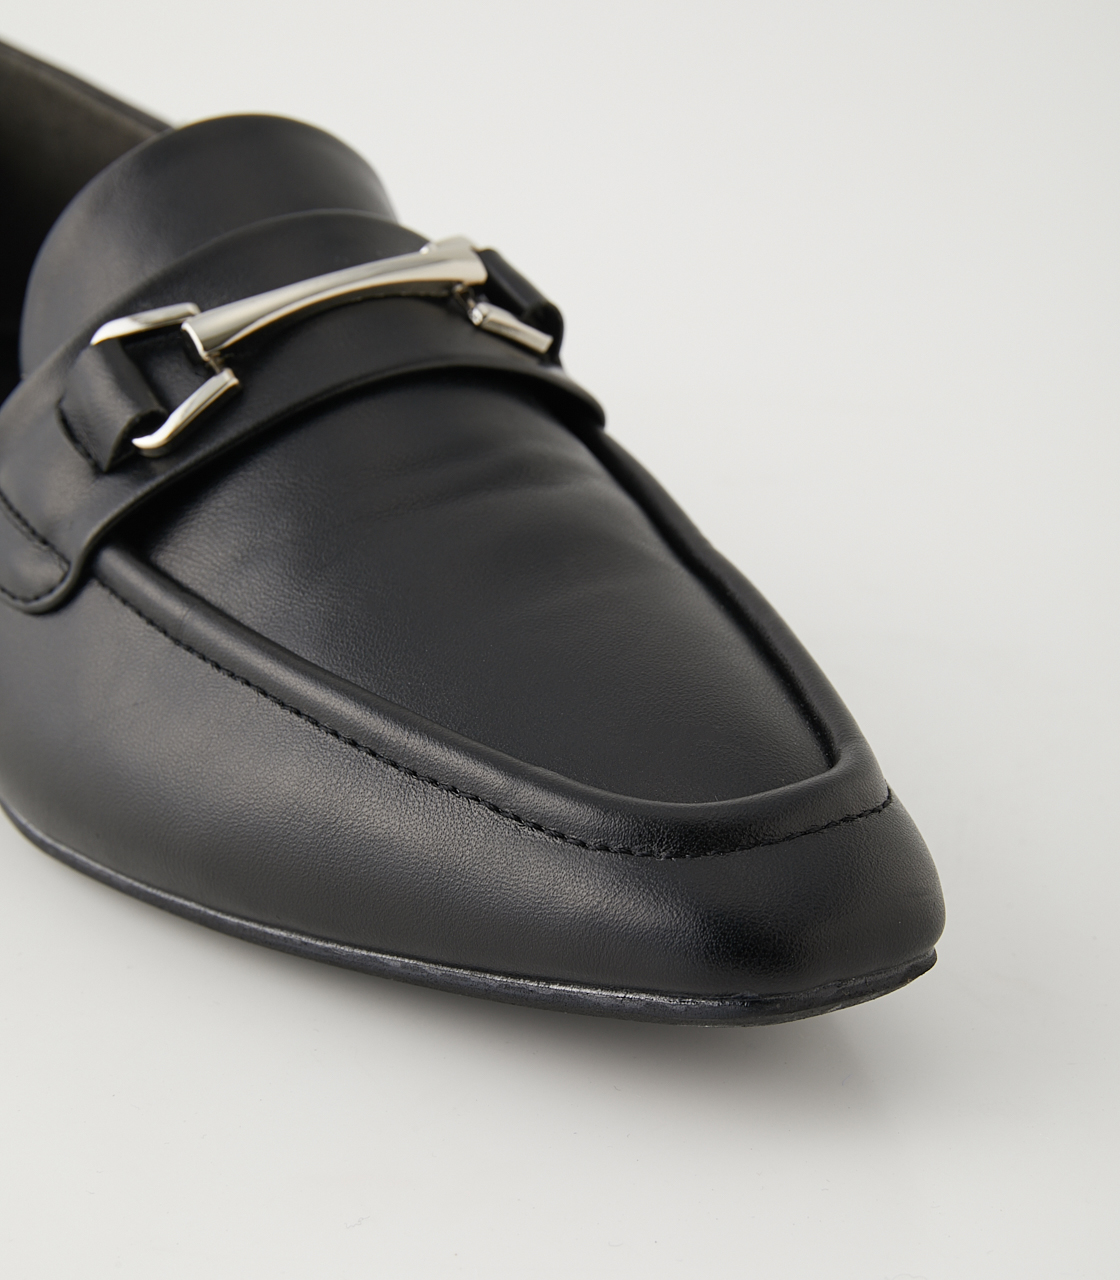 BABOUCHE LOAFER/バブーシュローファー 詳細画像 BLK 5